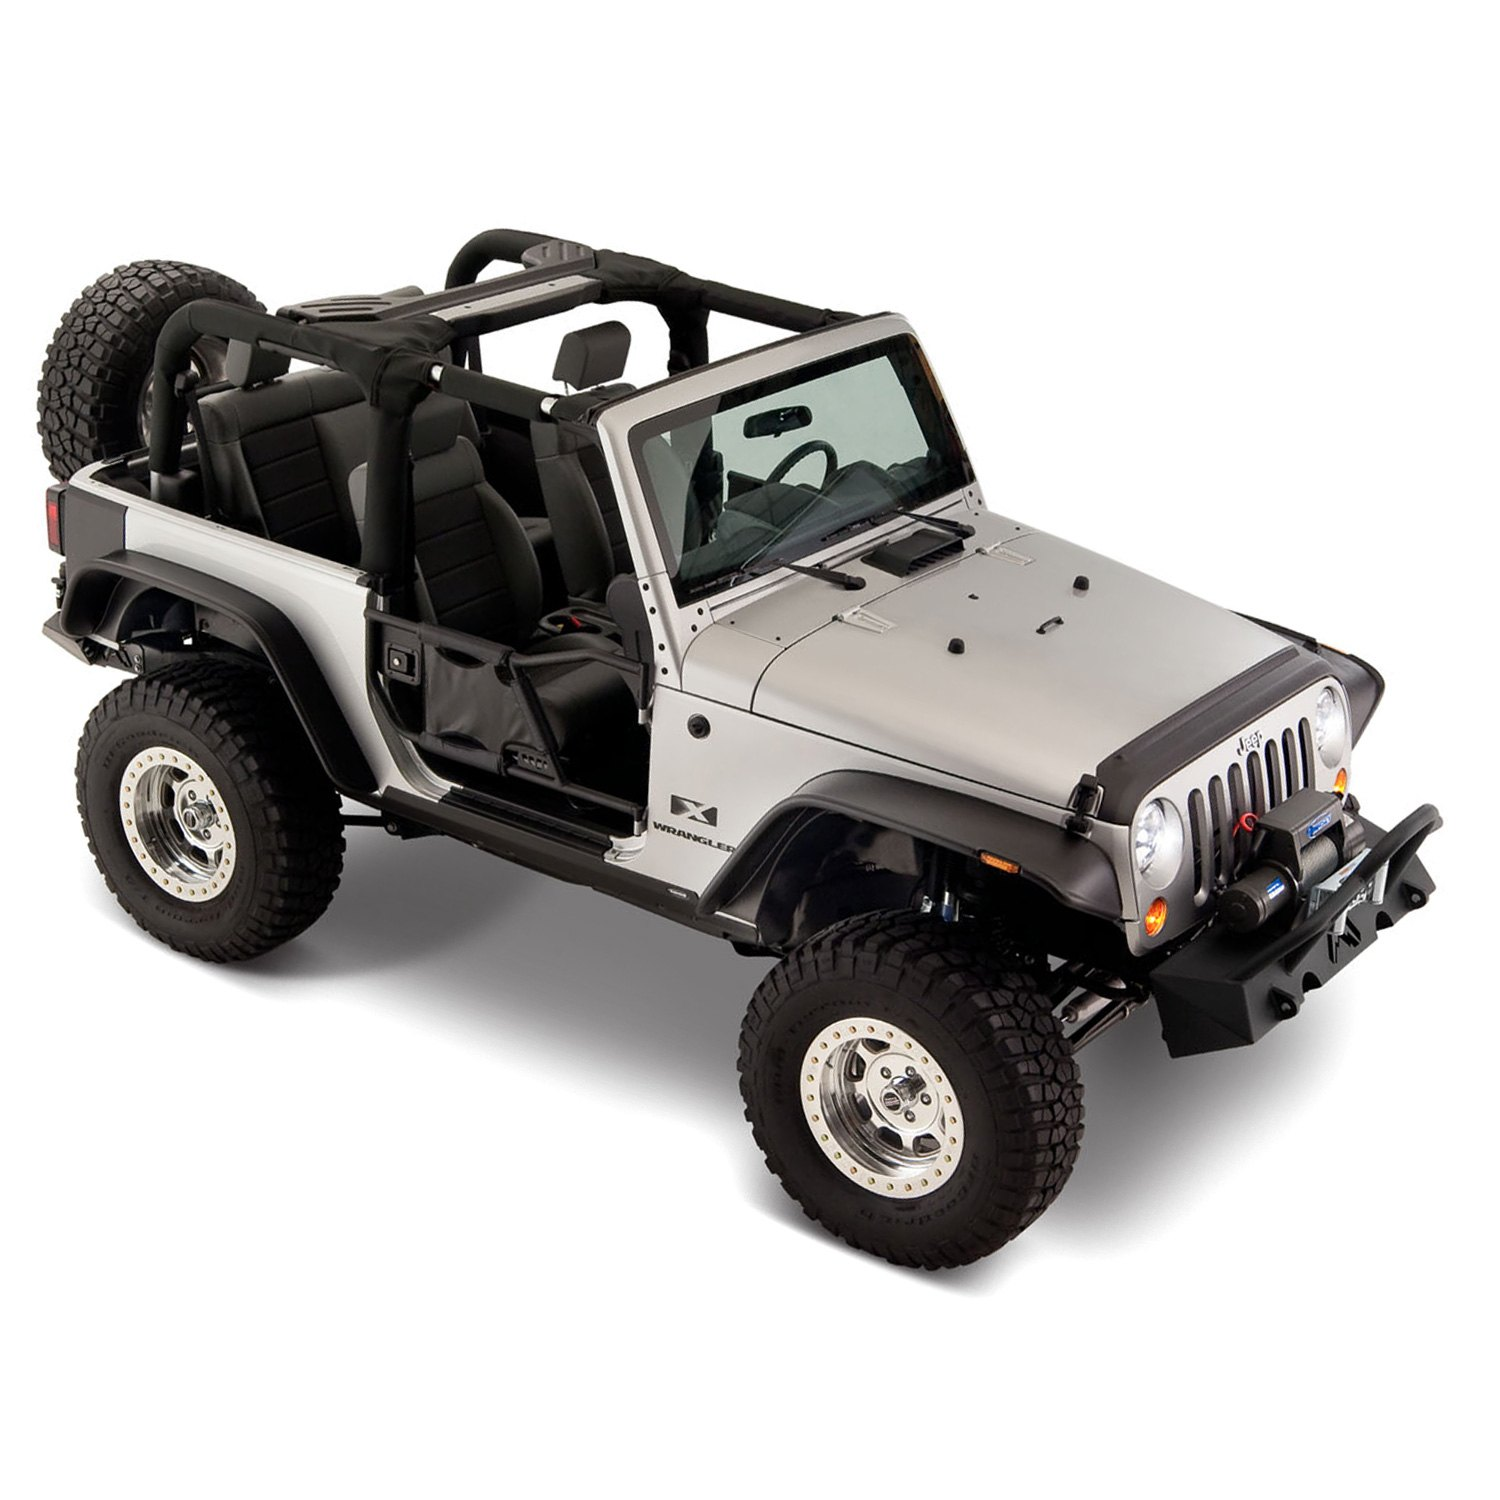 jeep wrangler sport utility 2009 flat style fender flares. Cars Review. Best American Auto & Cars Review